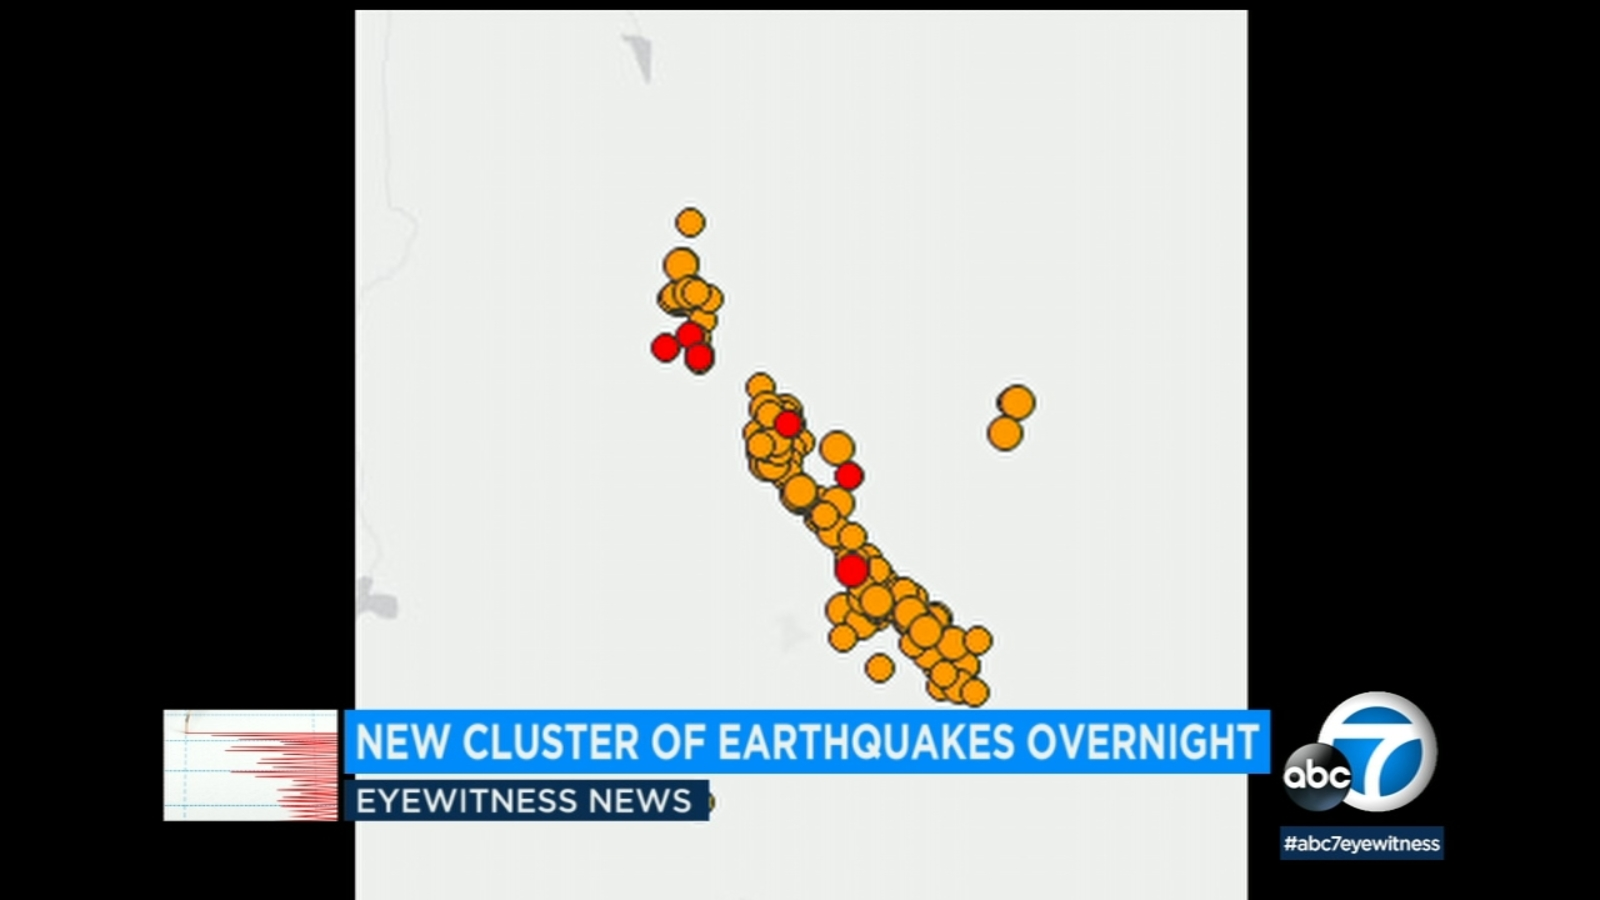 Los Angeles County officials and Dr. Lucy Jones discuss seismic activity, urge earthquake preparedness